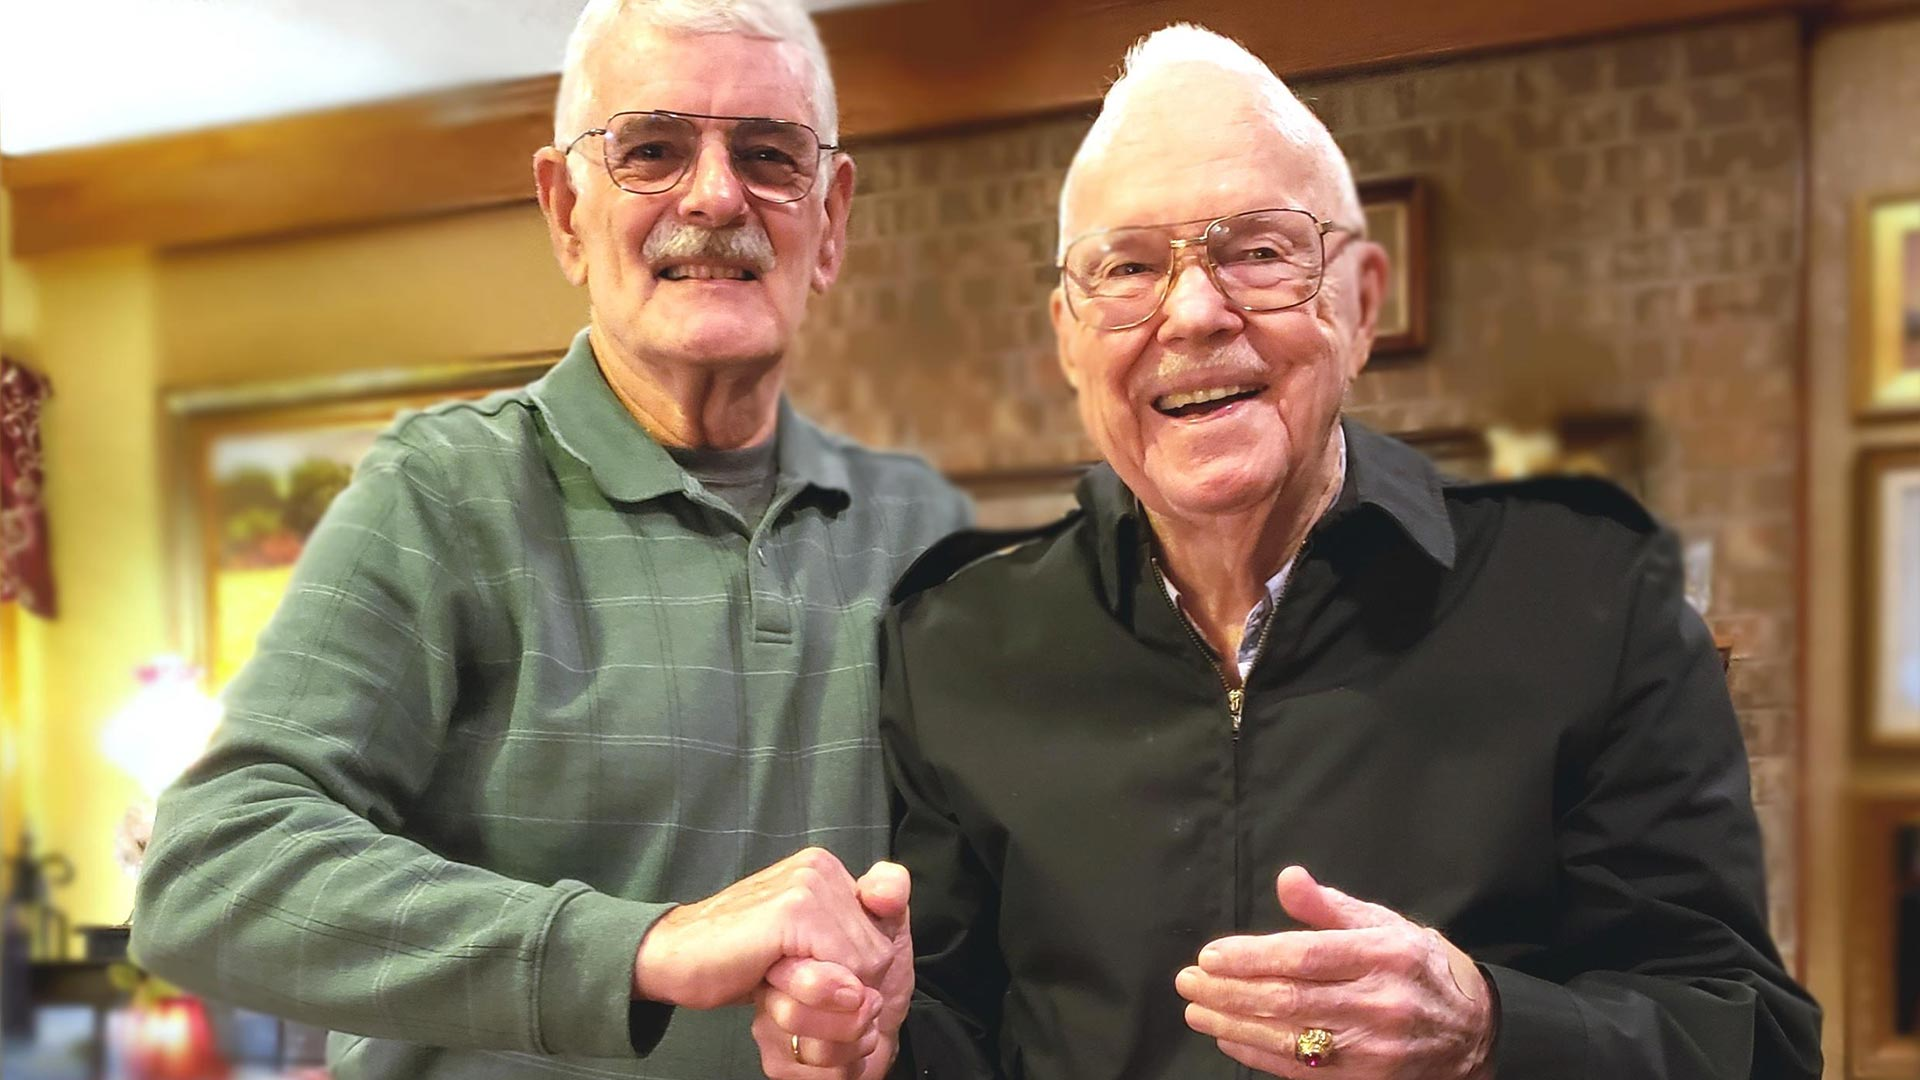 Two individuals standing facing camera holding hands smiling